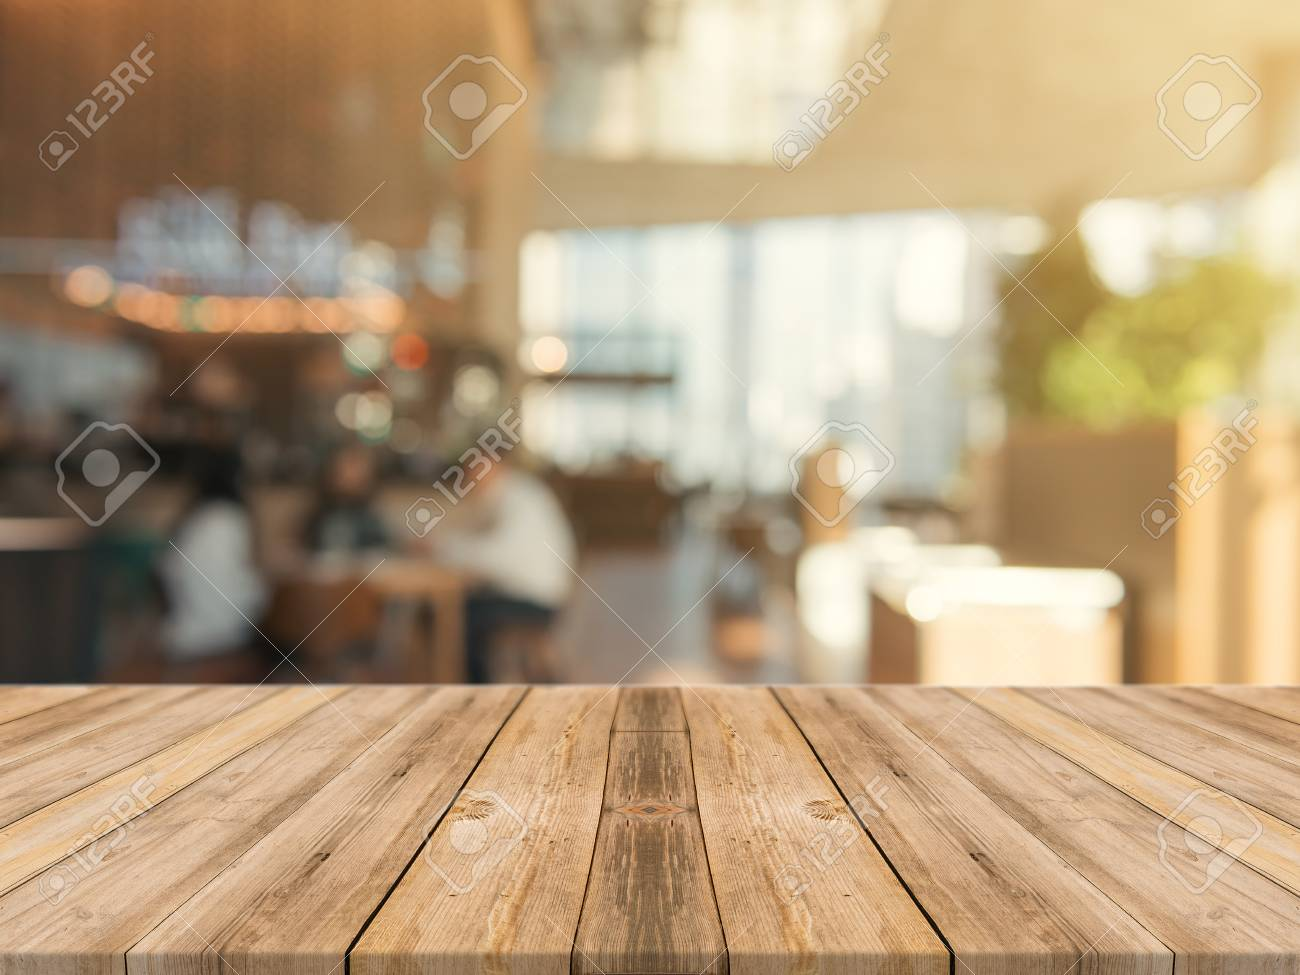 Wooden board empty table top on of blurred background. Perspective brown wood table over blur in coffee shop background - can be used mock up for montage products display or design key visual layout. - 88470651